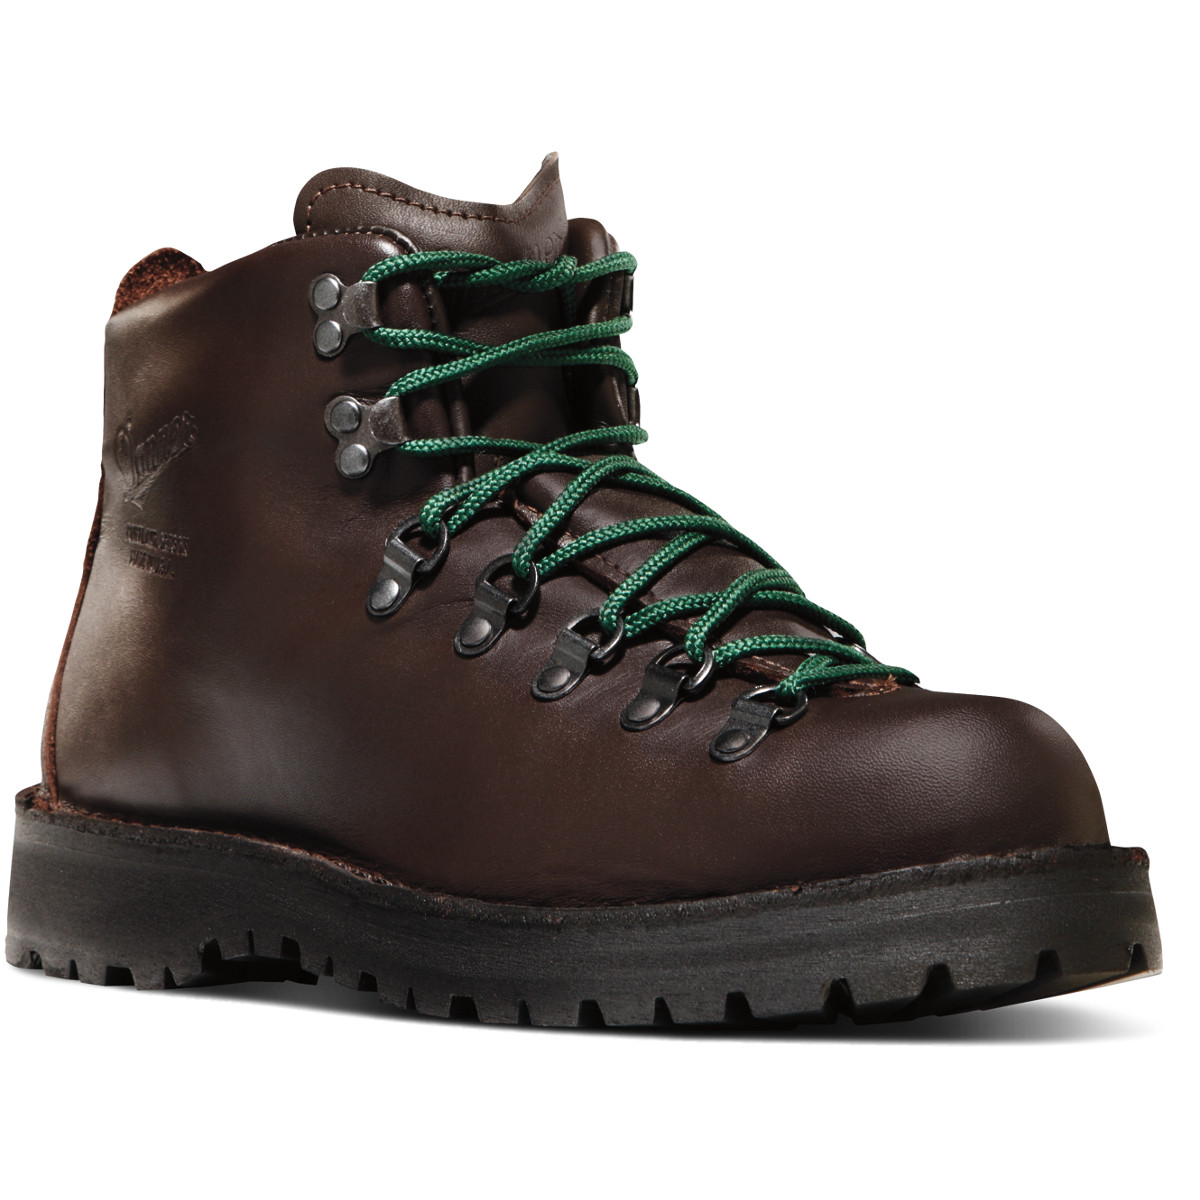 Hiking Boots | Best Selection, Lowest Prices on Hiking Footwear